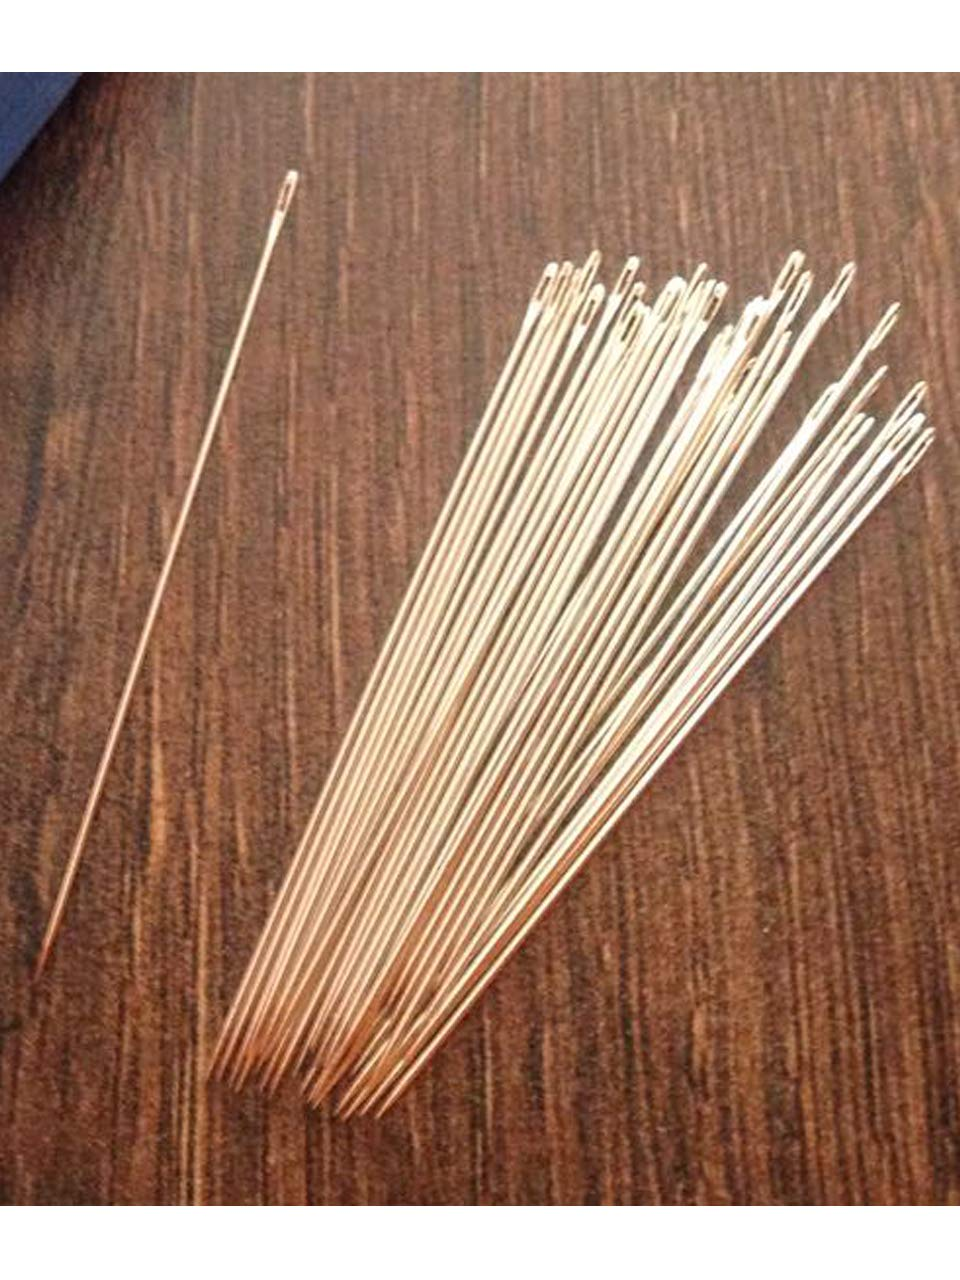 21 Pcs Beading Needles Size 8 with Needle Threader in 2 Clear Storage Tubes for Jewelry and Beading Projects